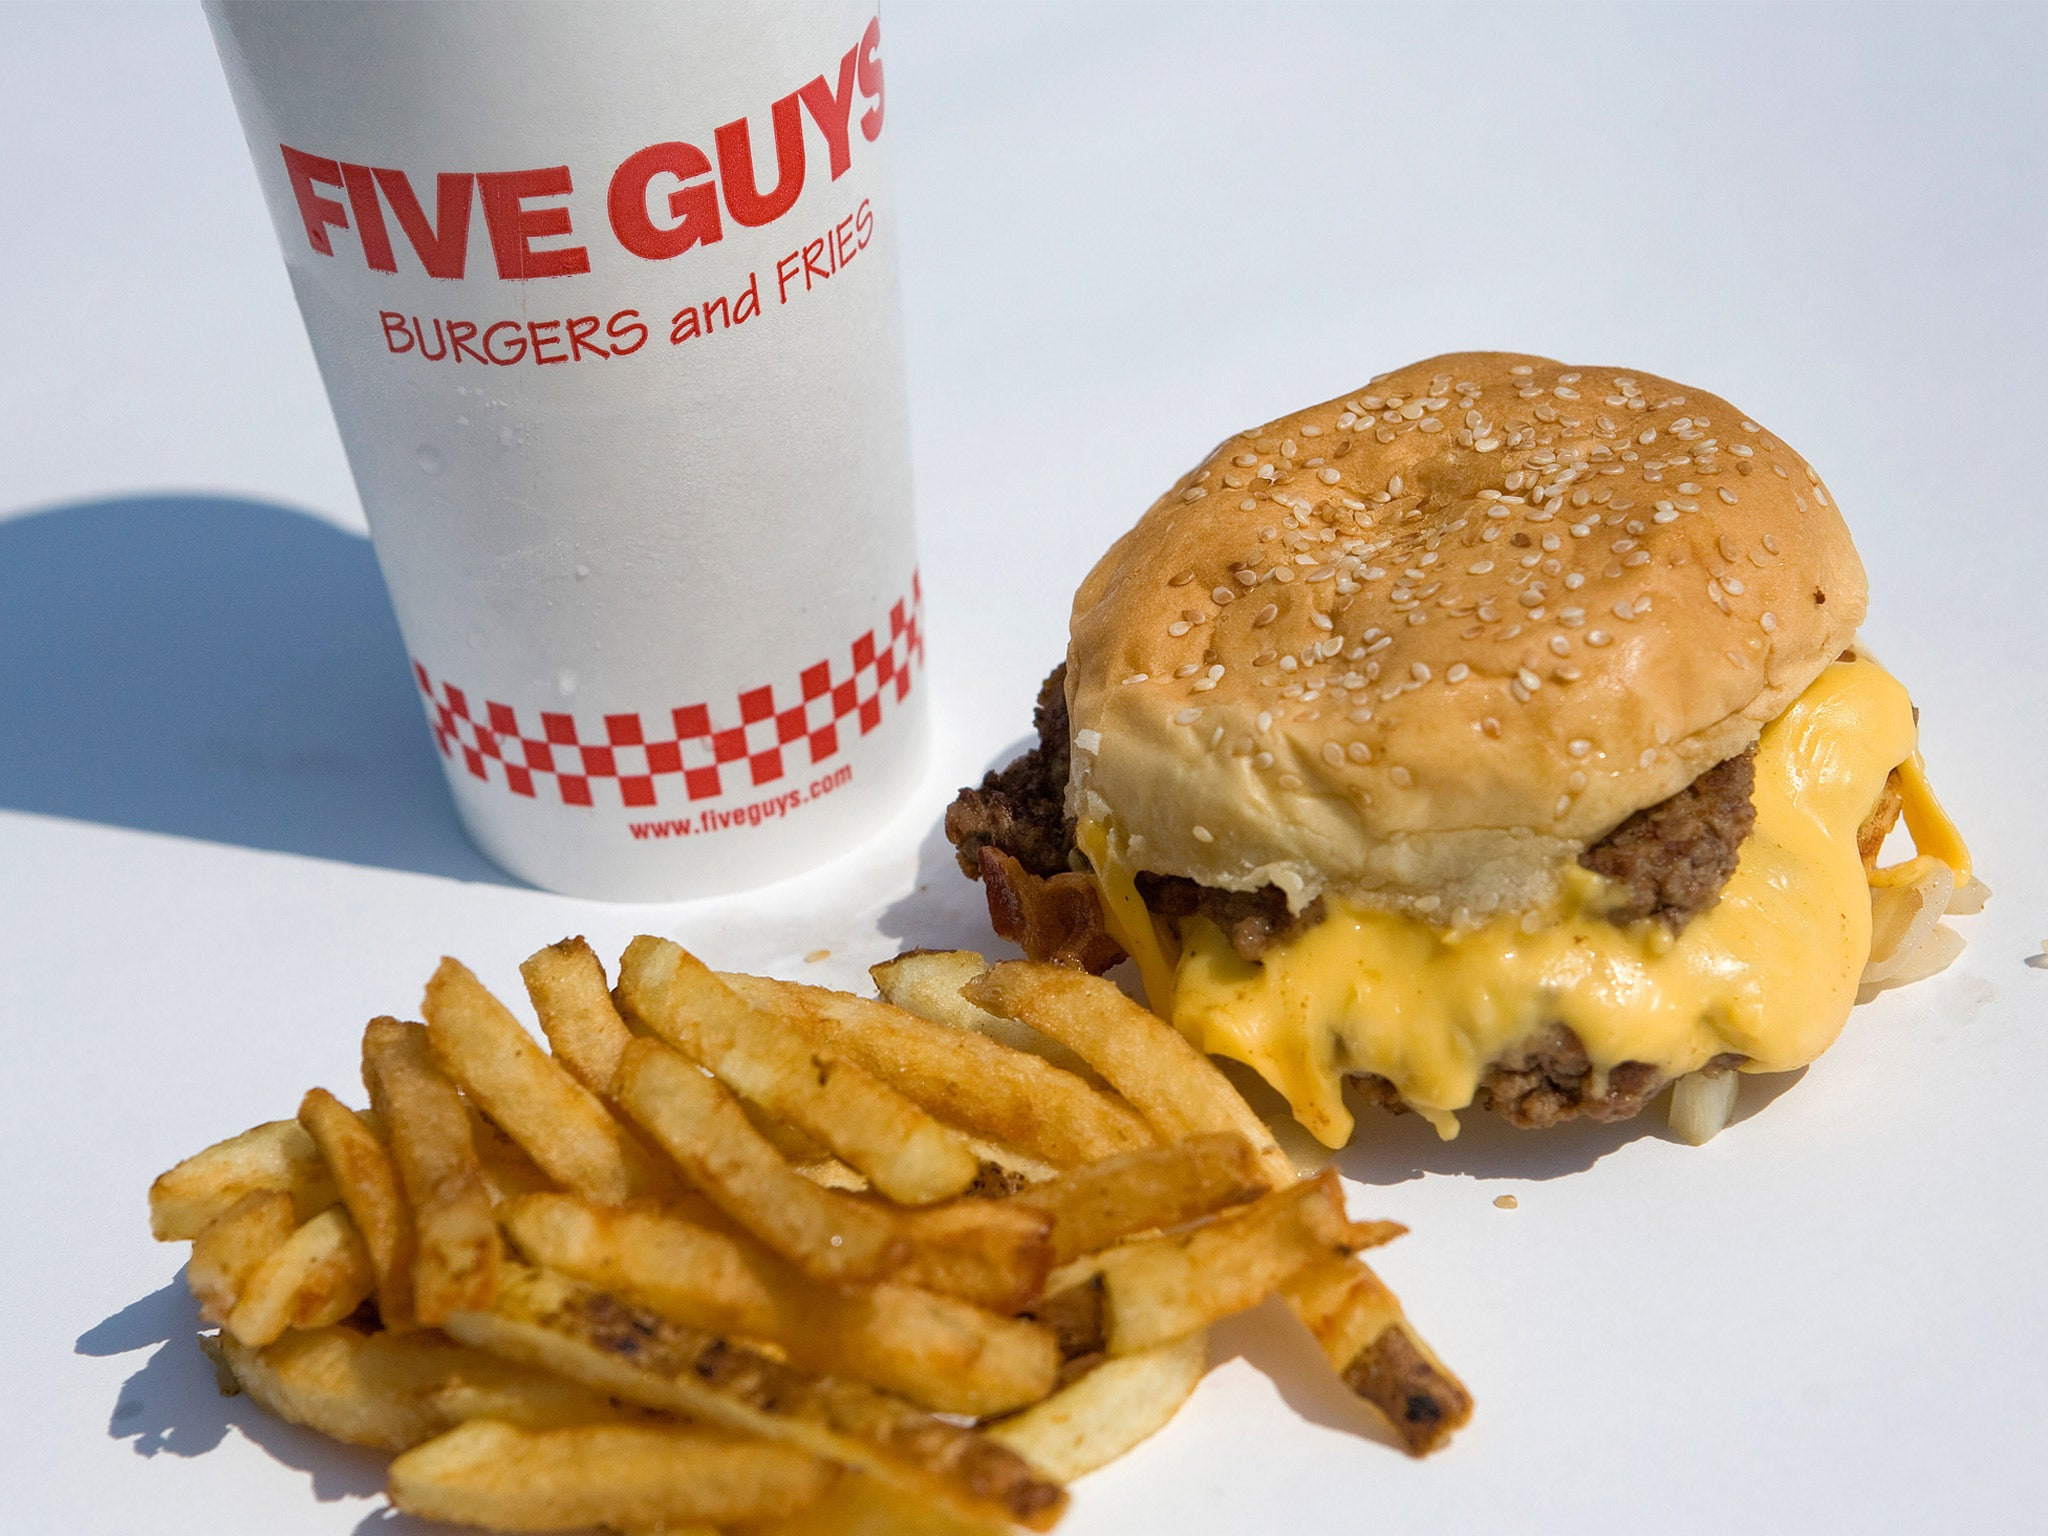 Food: Loaded buns as the burger war rages | The Independent